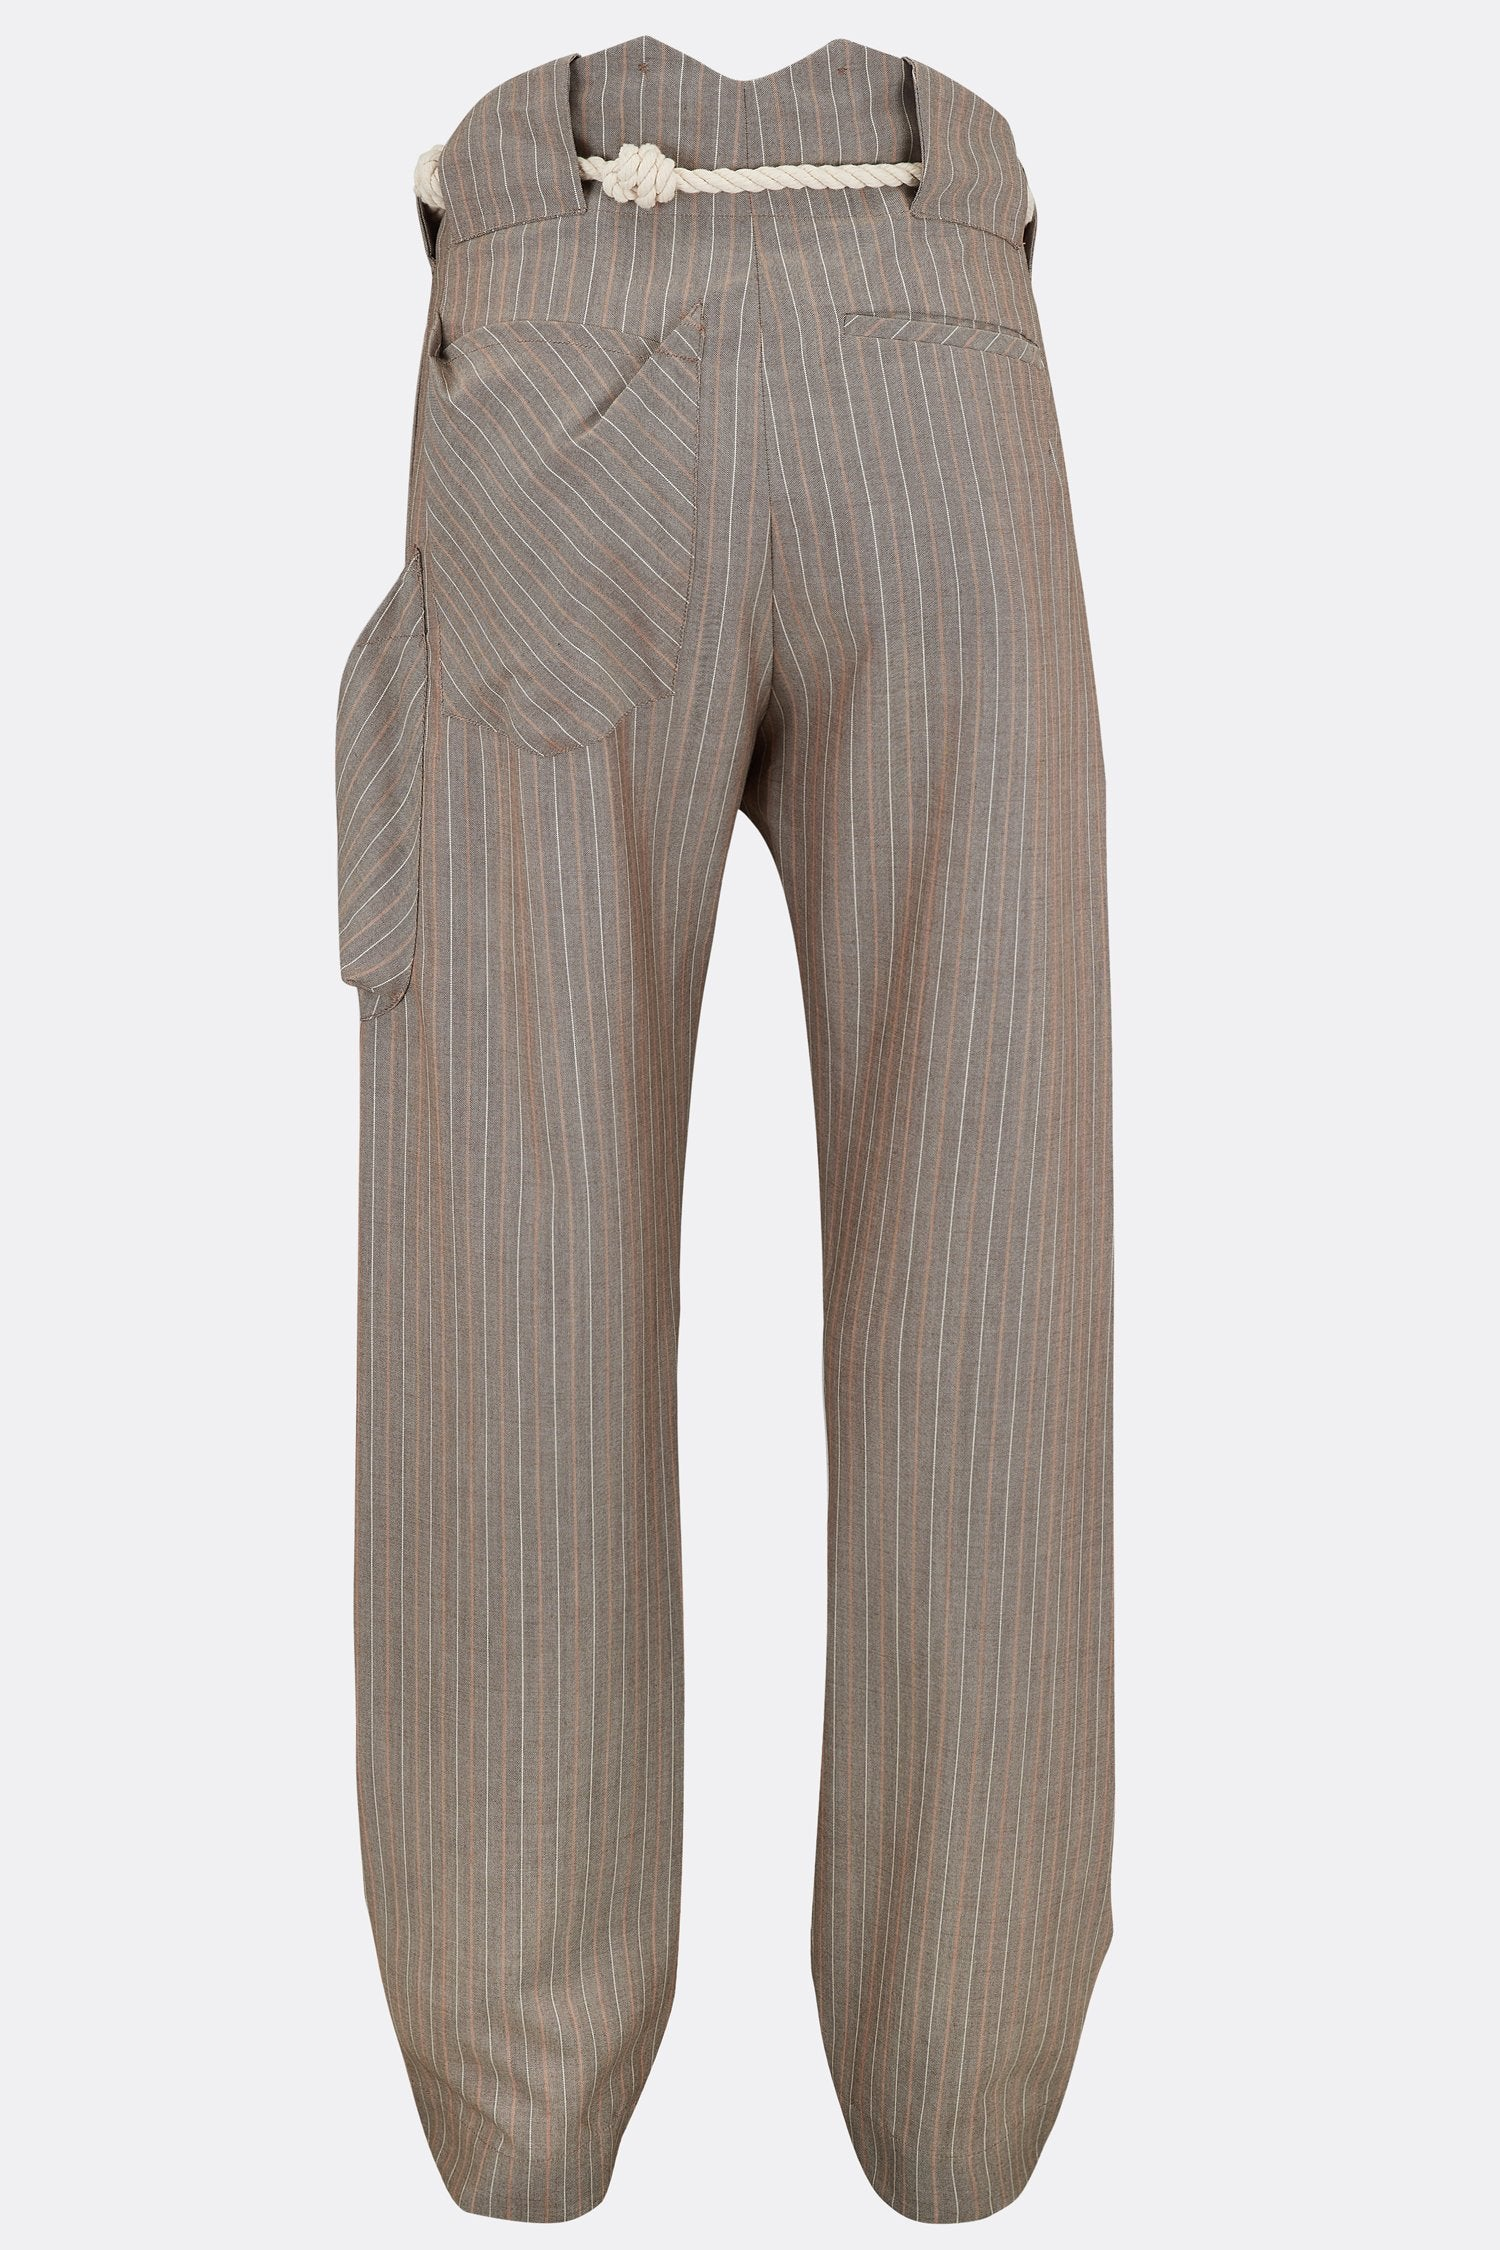 NAPPER TROUSERS LIGHT IN BROWN AND ORANGE STRIPE-menswear-A Child Of The Jago